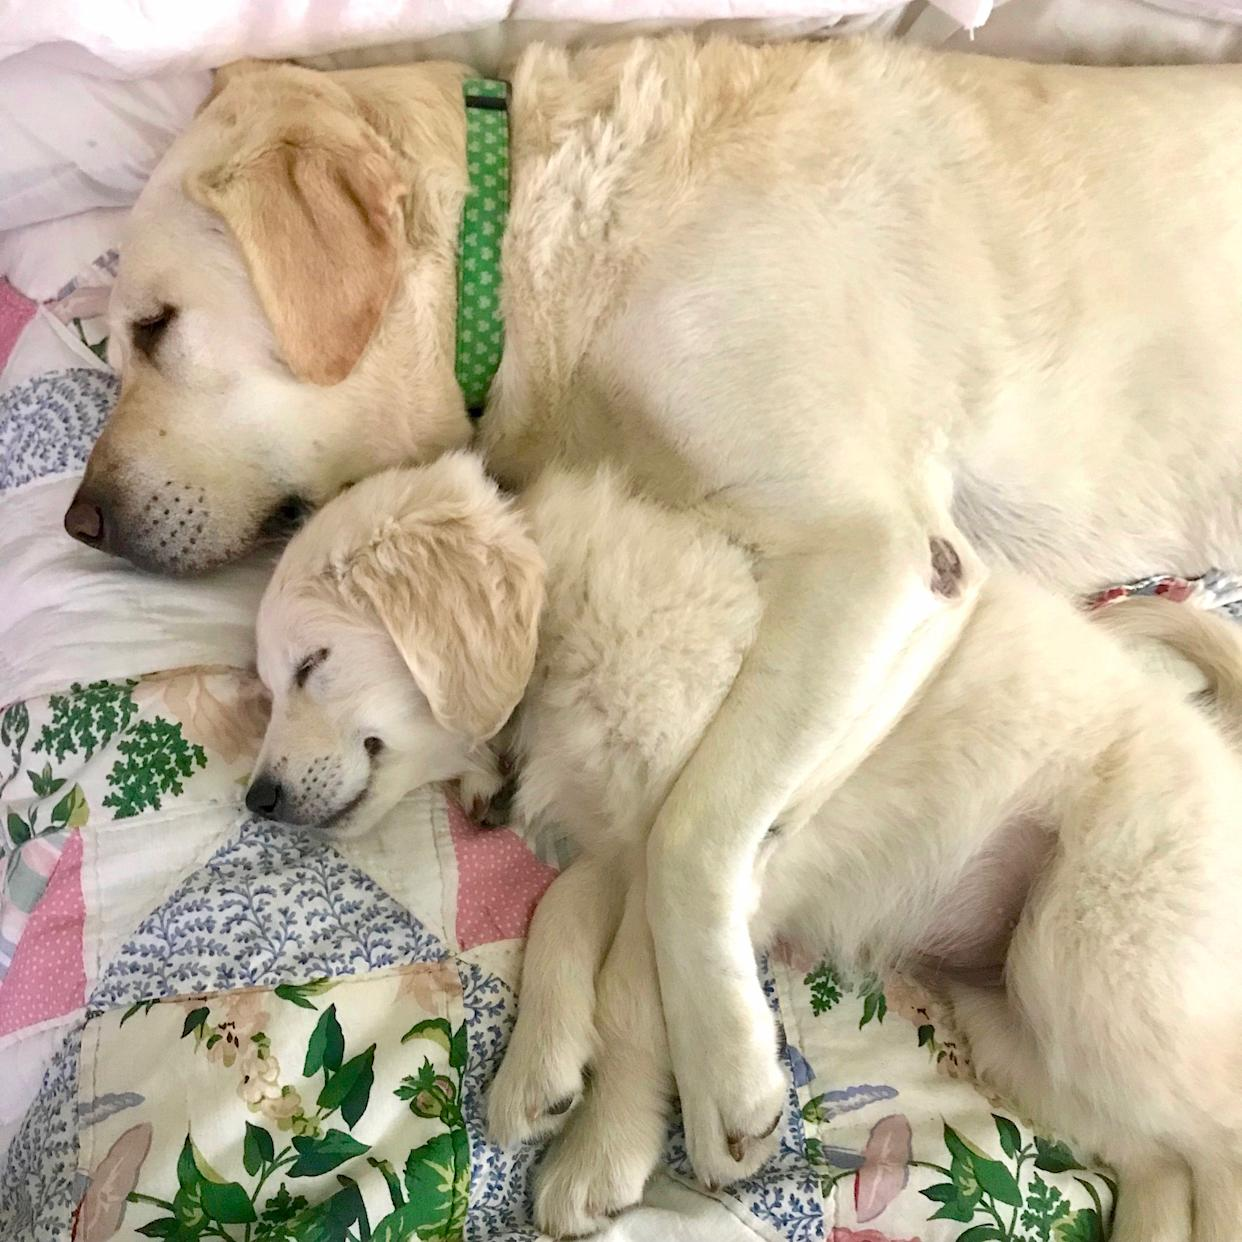 A service dogs cuddles a puppy in training.